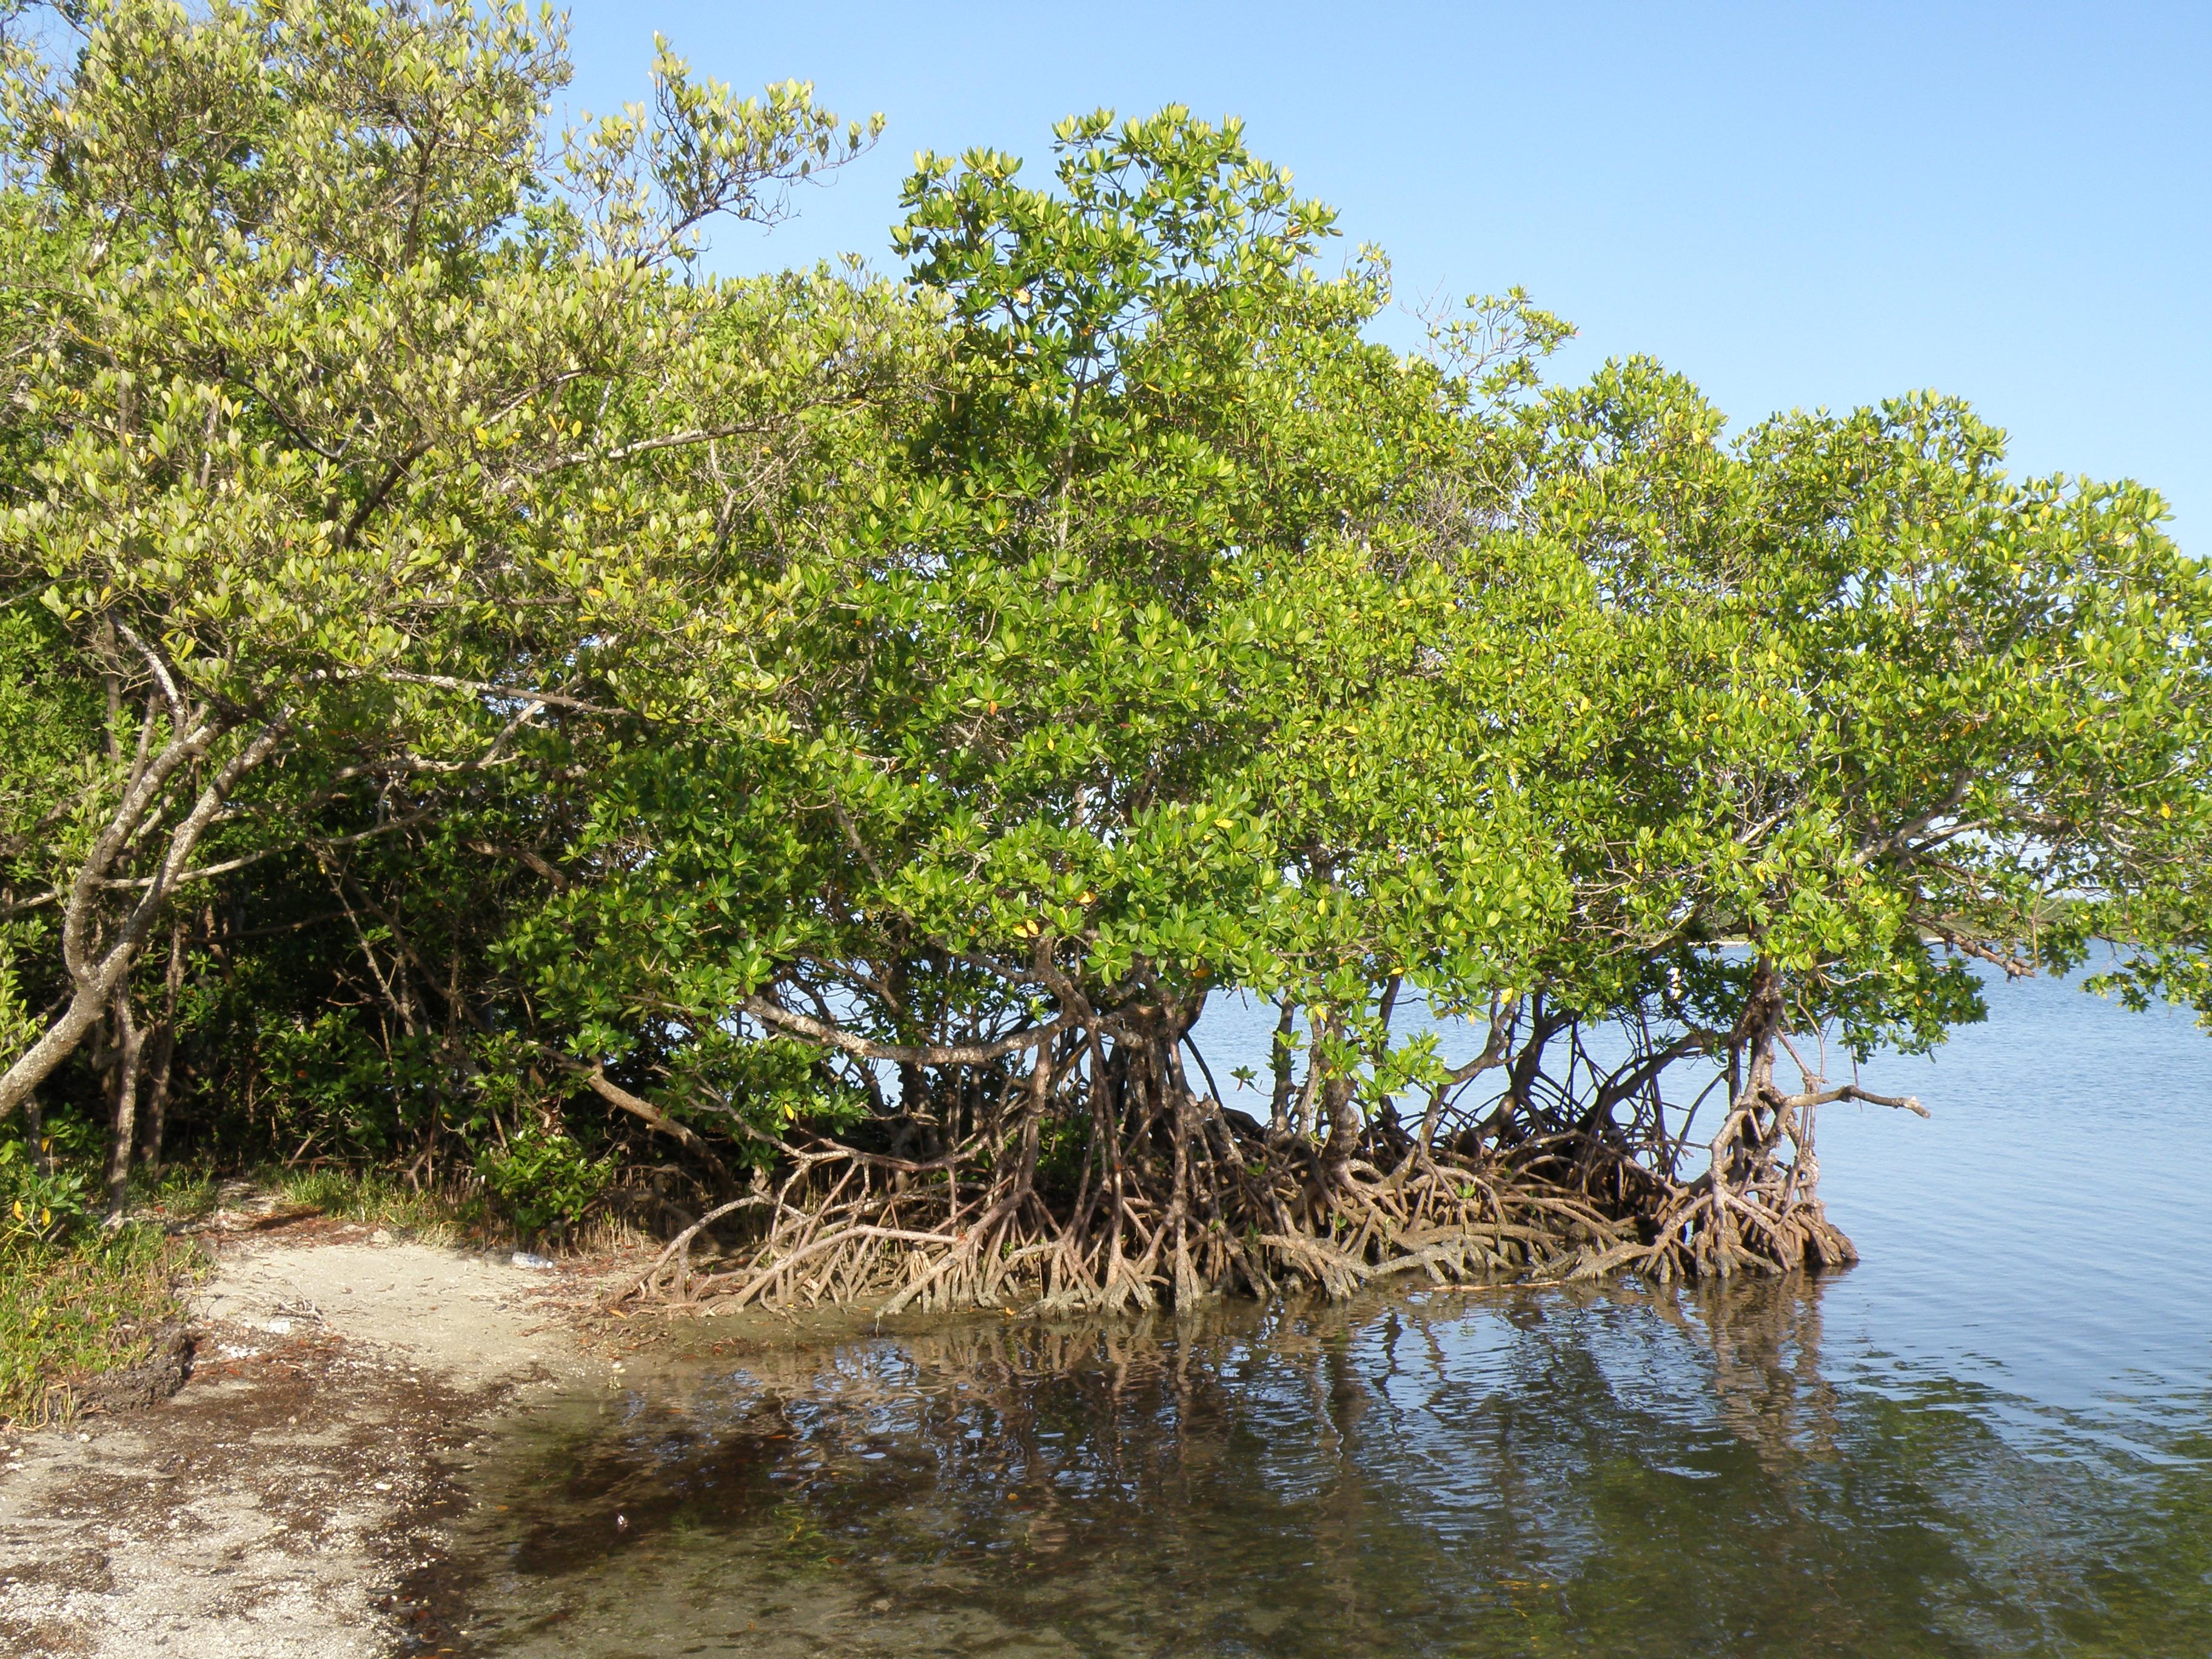 Mangroves in Estero Bay, Bonita Springs, FL